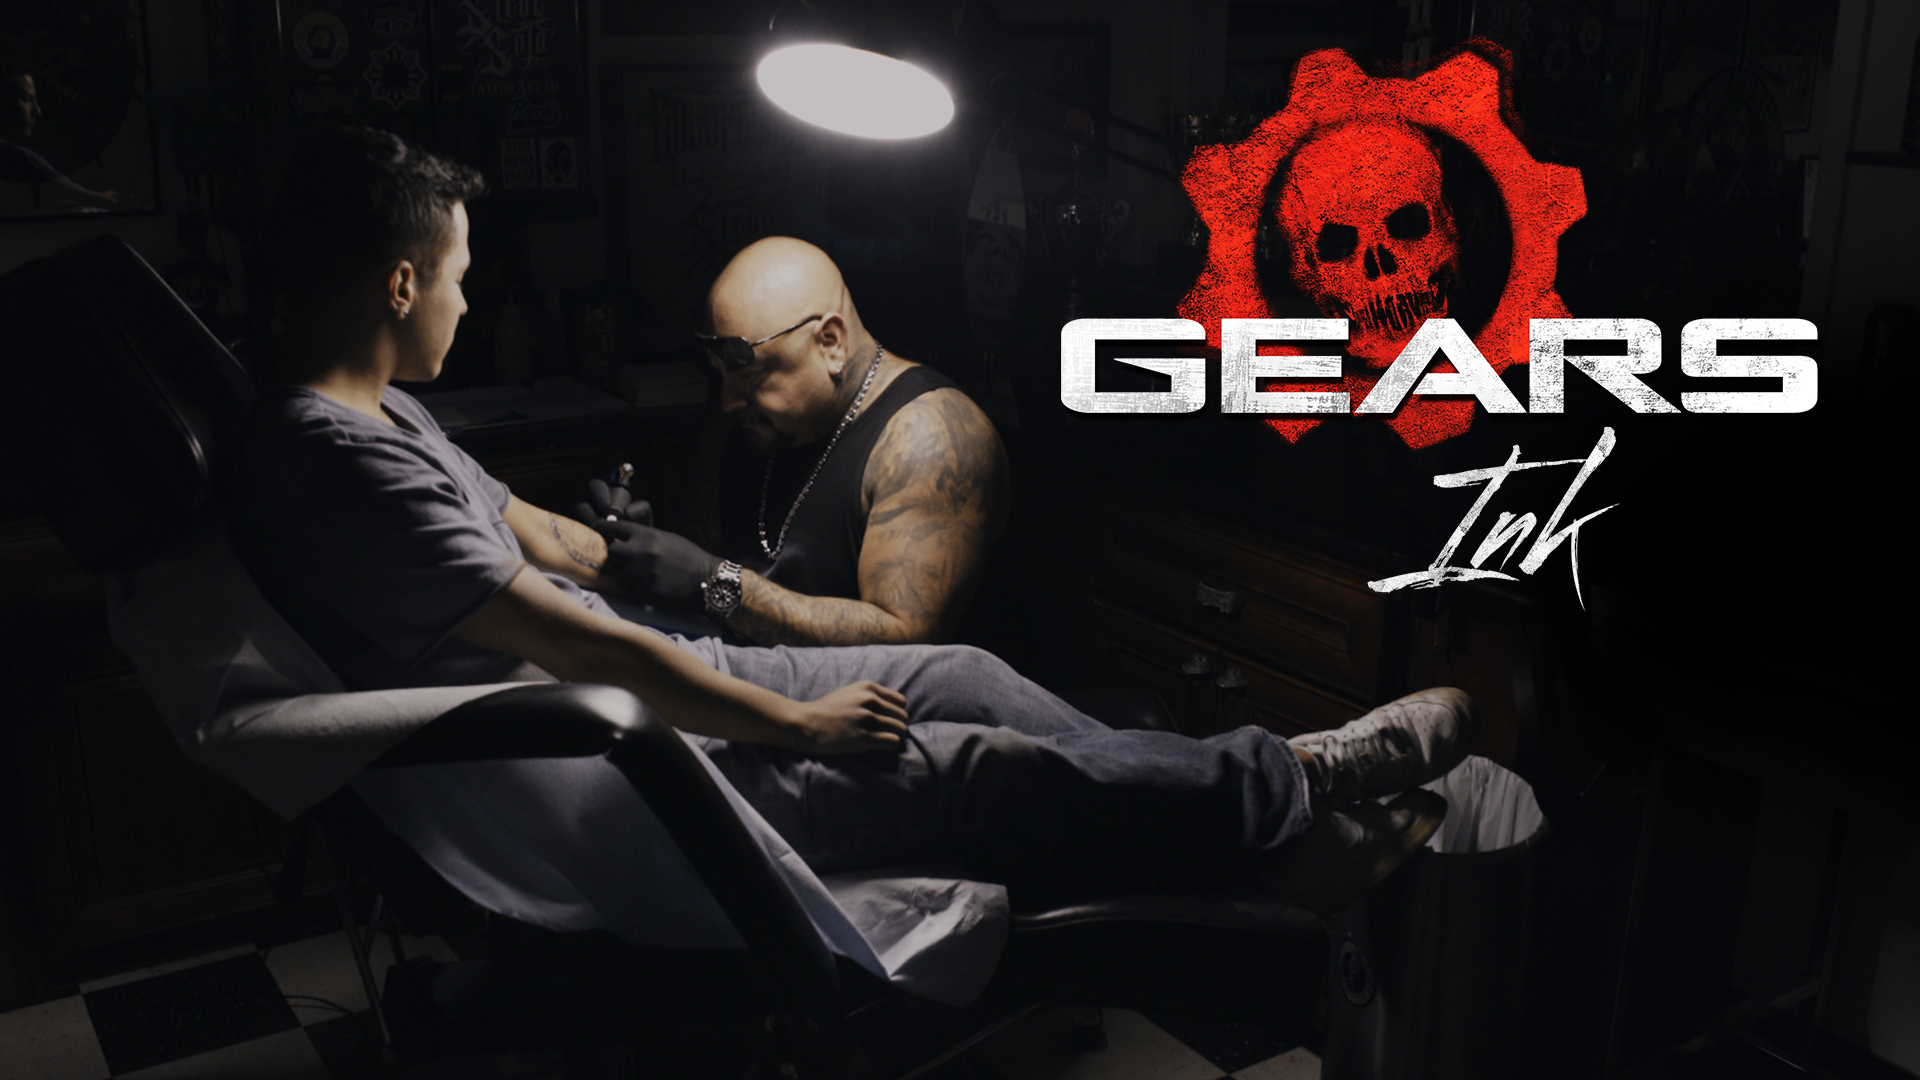 Video For Gears Ink Celebrates Fans, Dedication